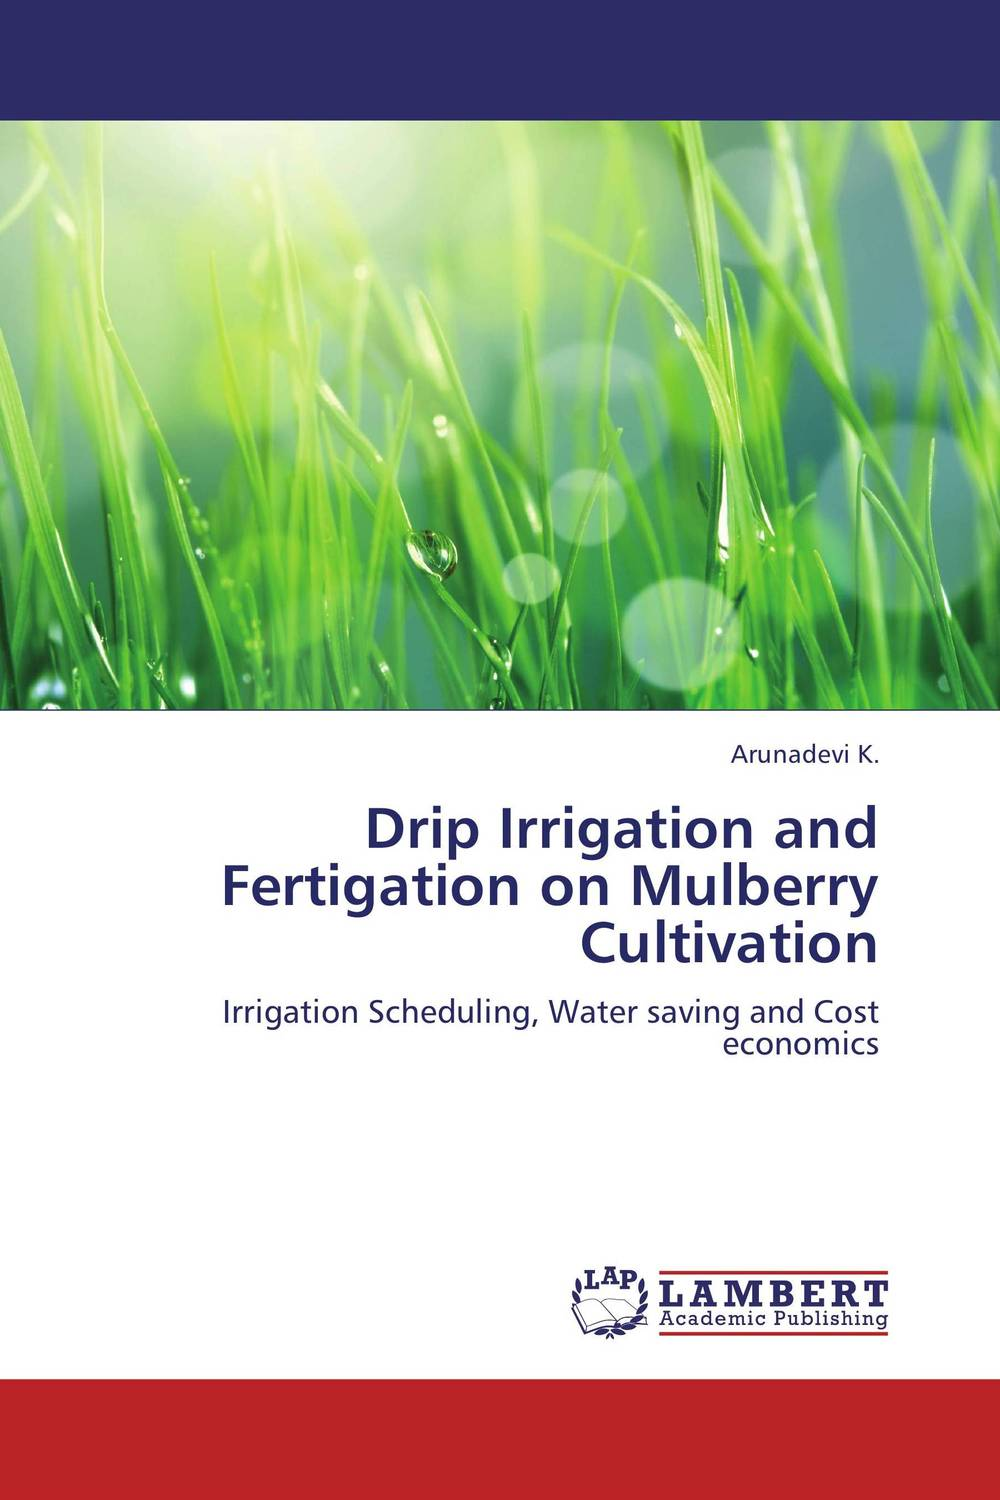 где купить  Drip Irrigation and Fertigation on Mulberry Cultivation  дешево